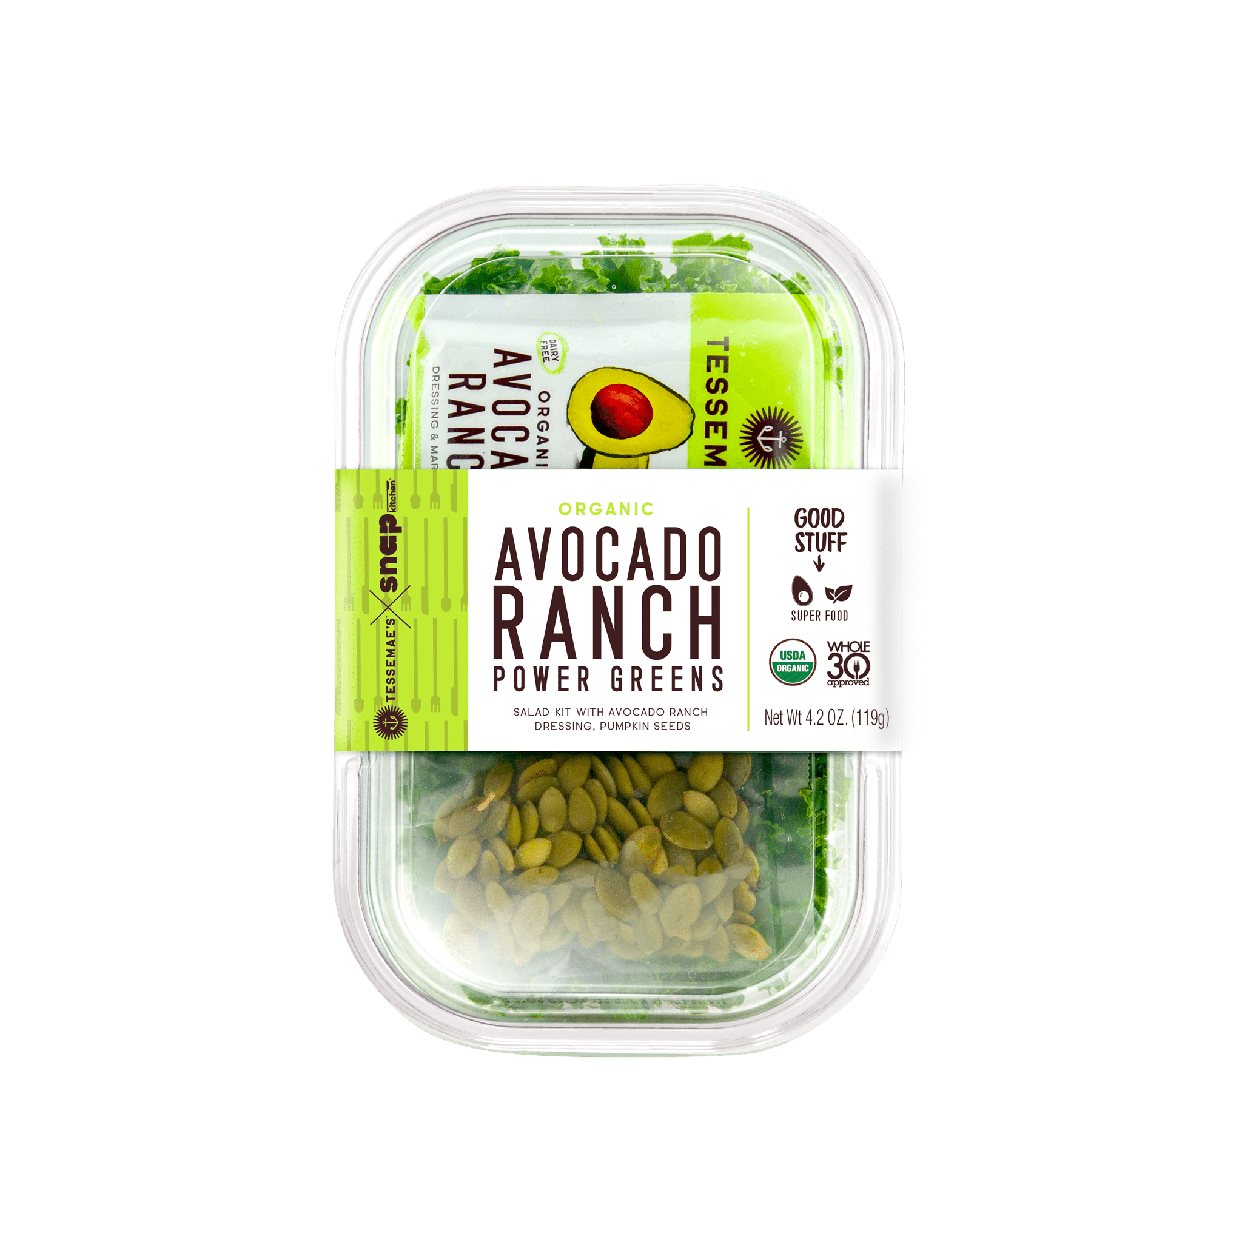 avocado ranch power greens salad